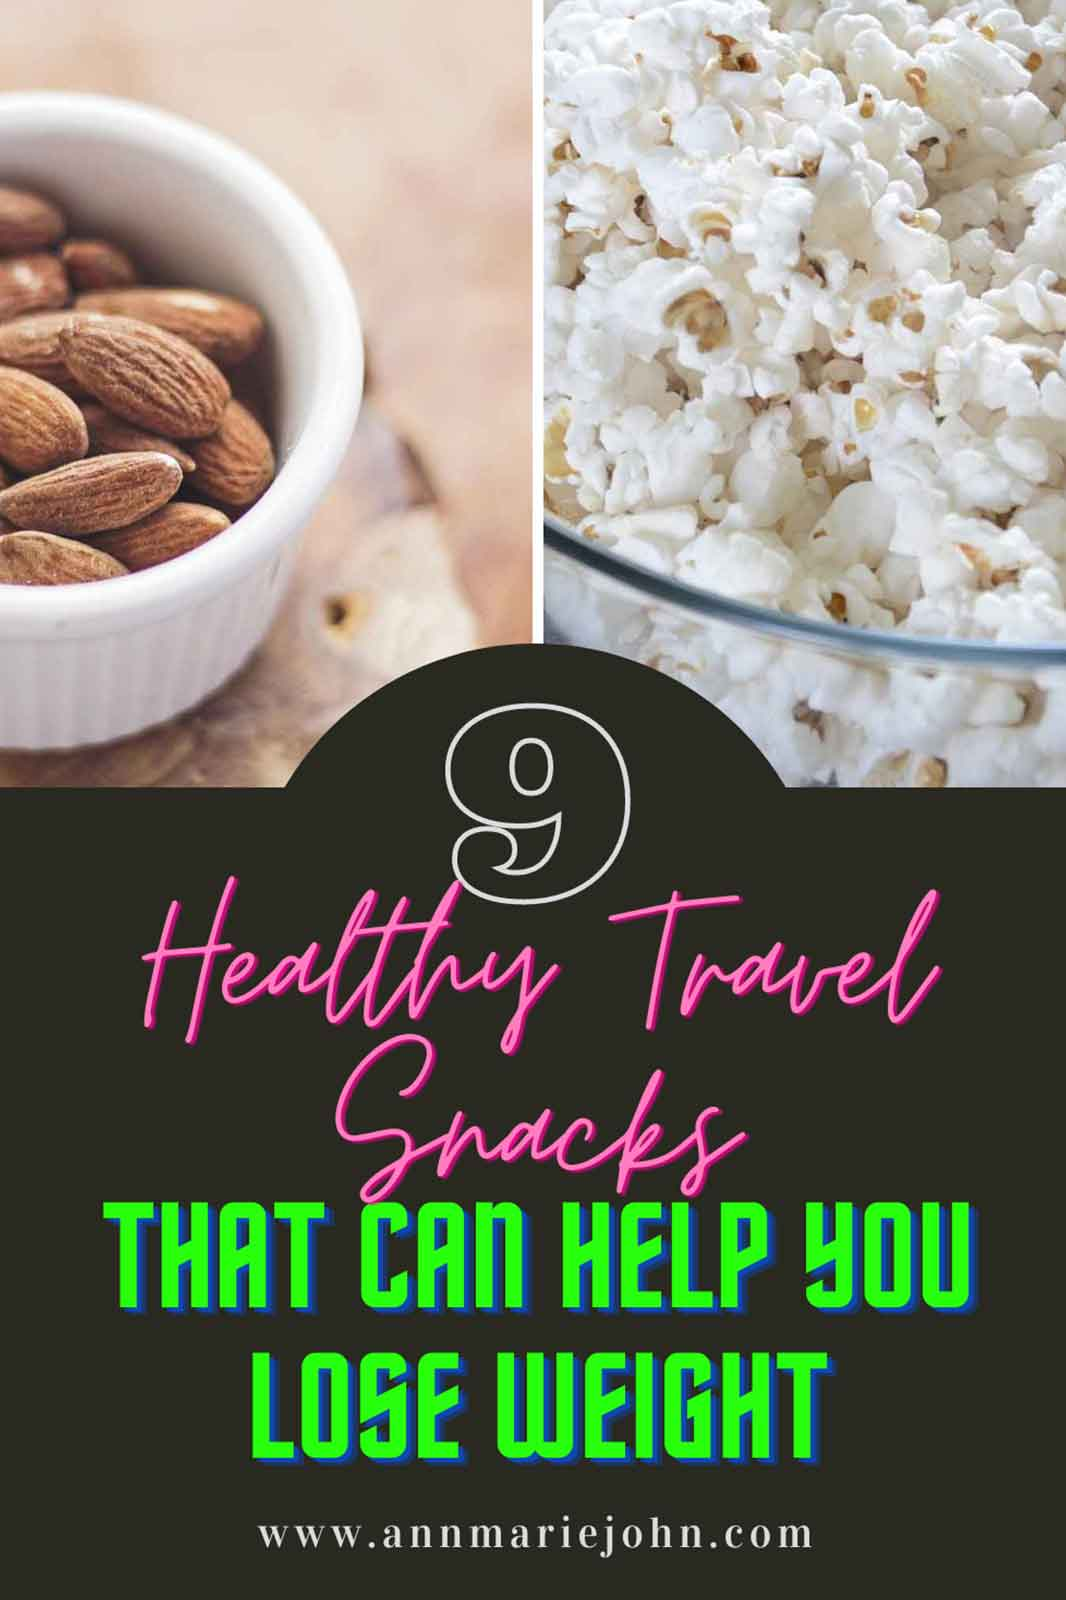 Healthy Travel Snacks That can Help You Lose Weight